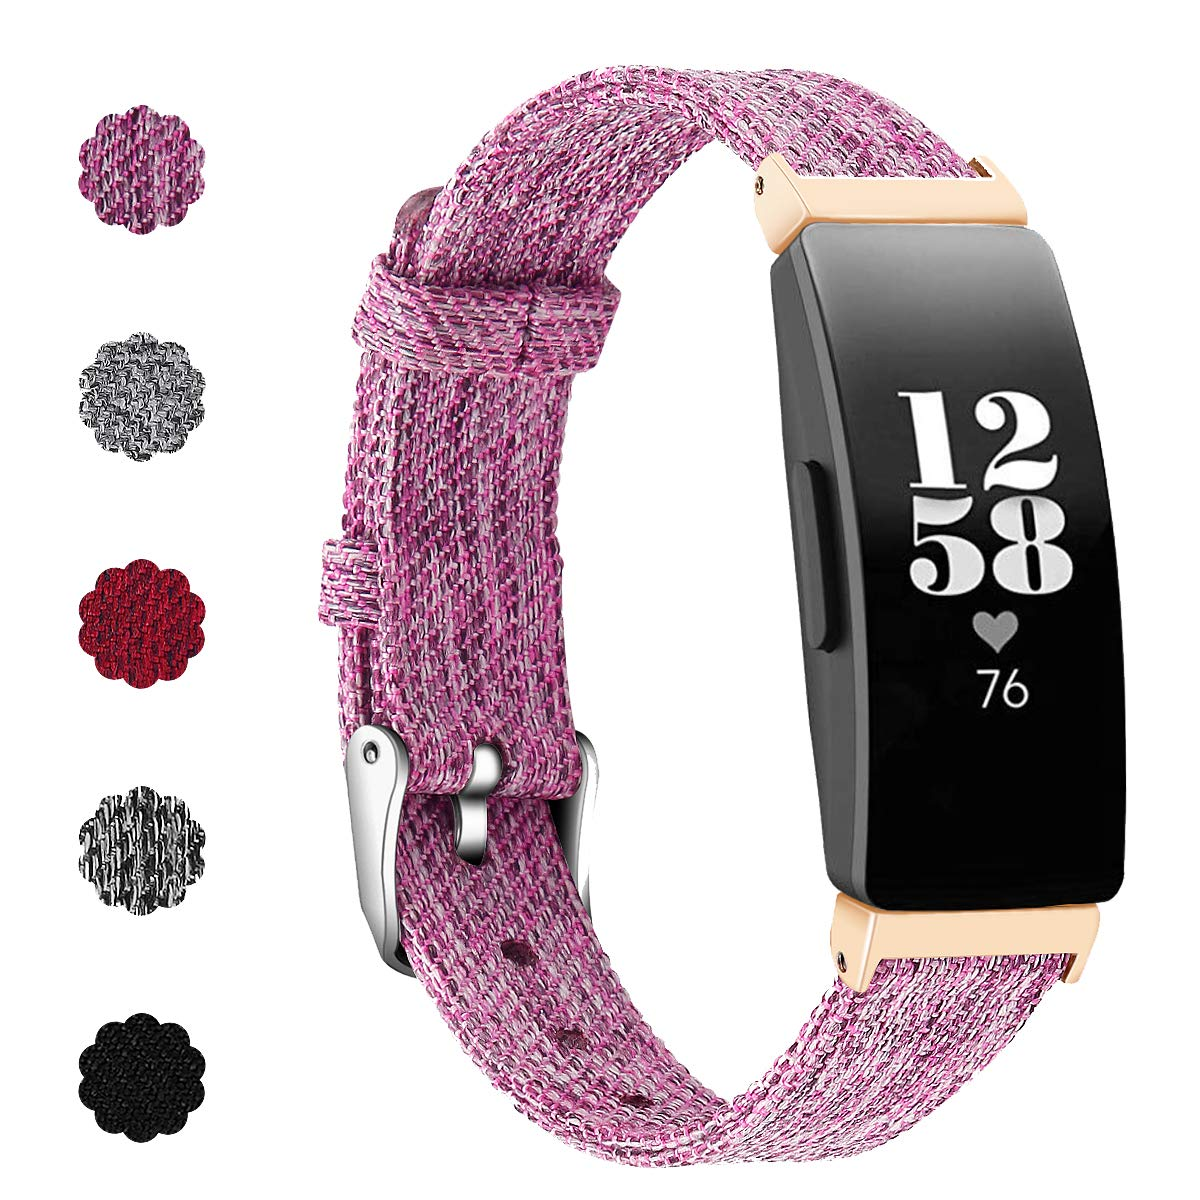 KIMILAR Compatible for Fitbit Inspire HR & Inspire Strap Bands Fabric, Replacement Nylon Band Soft Woven Wristband Bracelet for Fitbit Inspire & Inspire HR Fitness Tracker